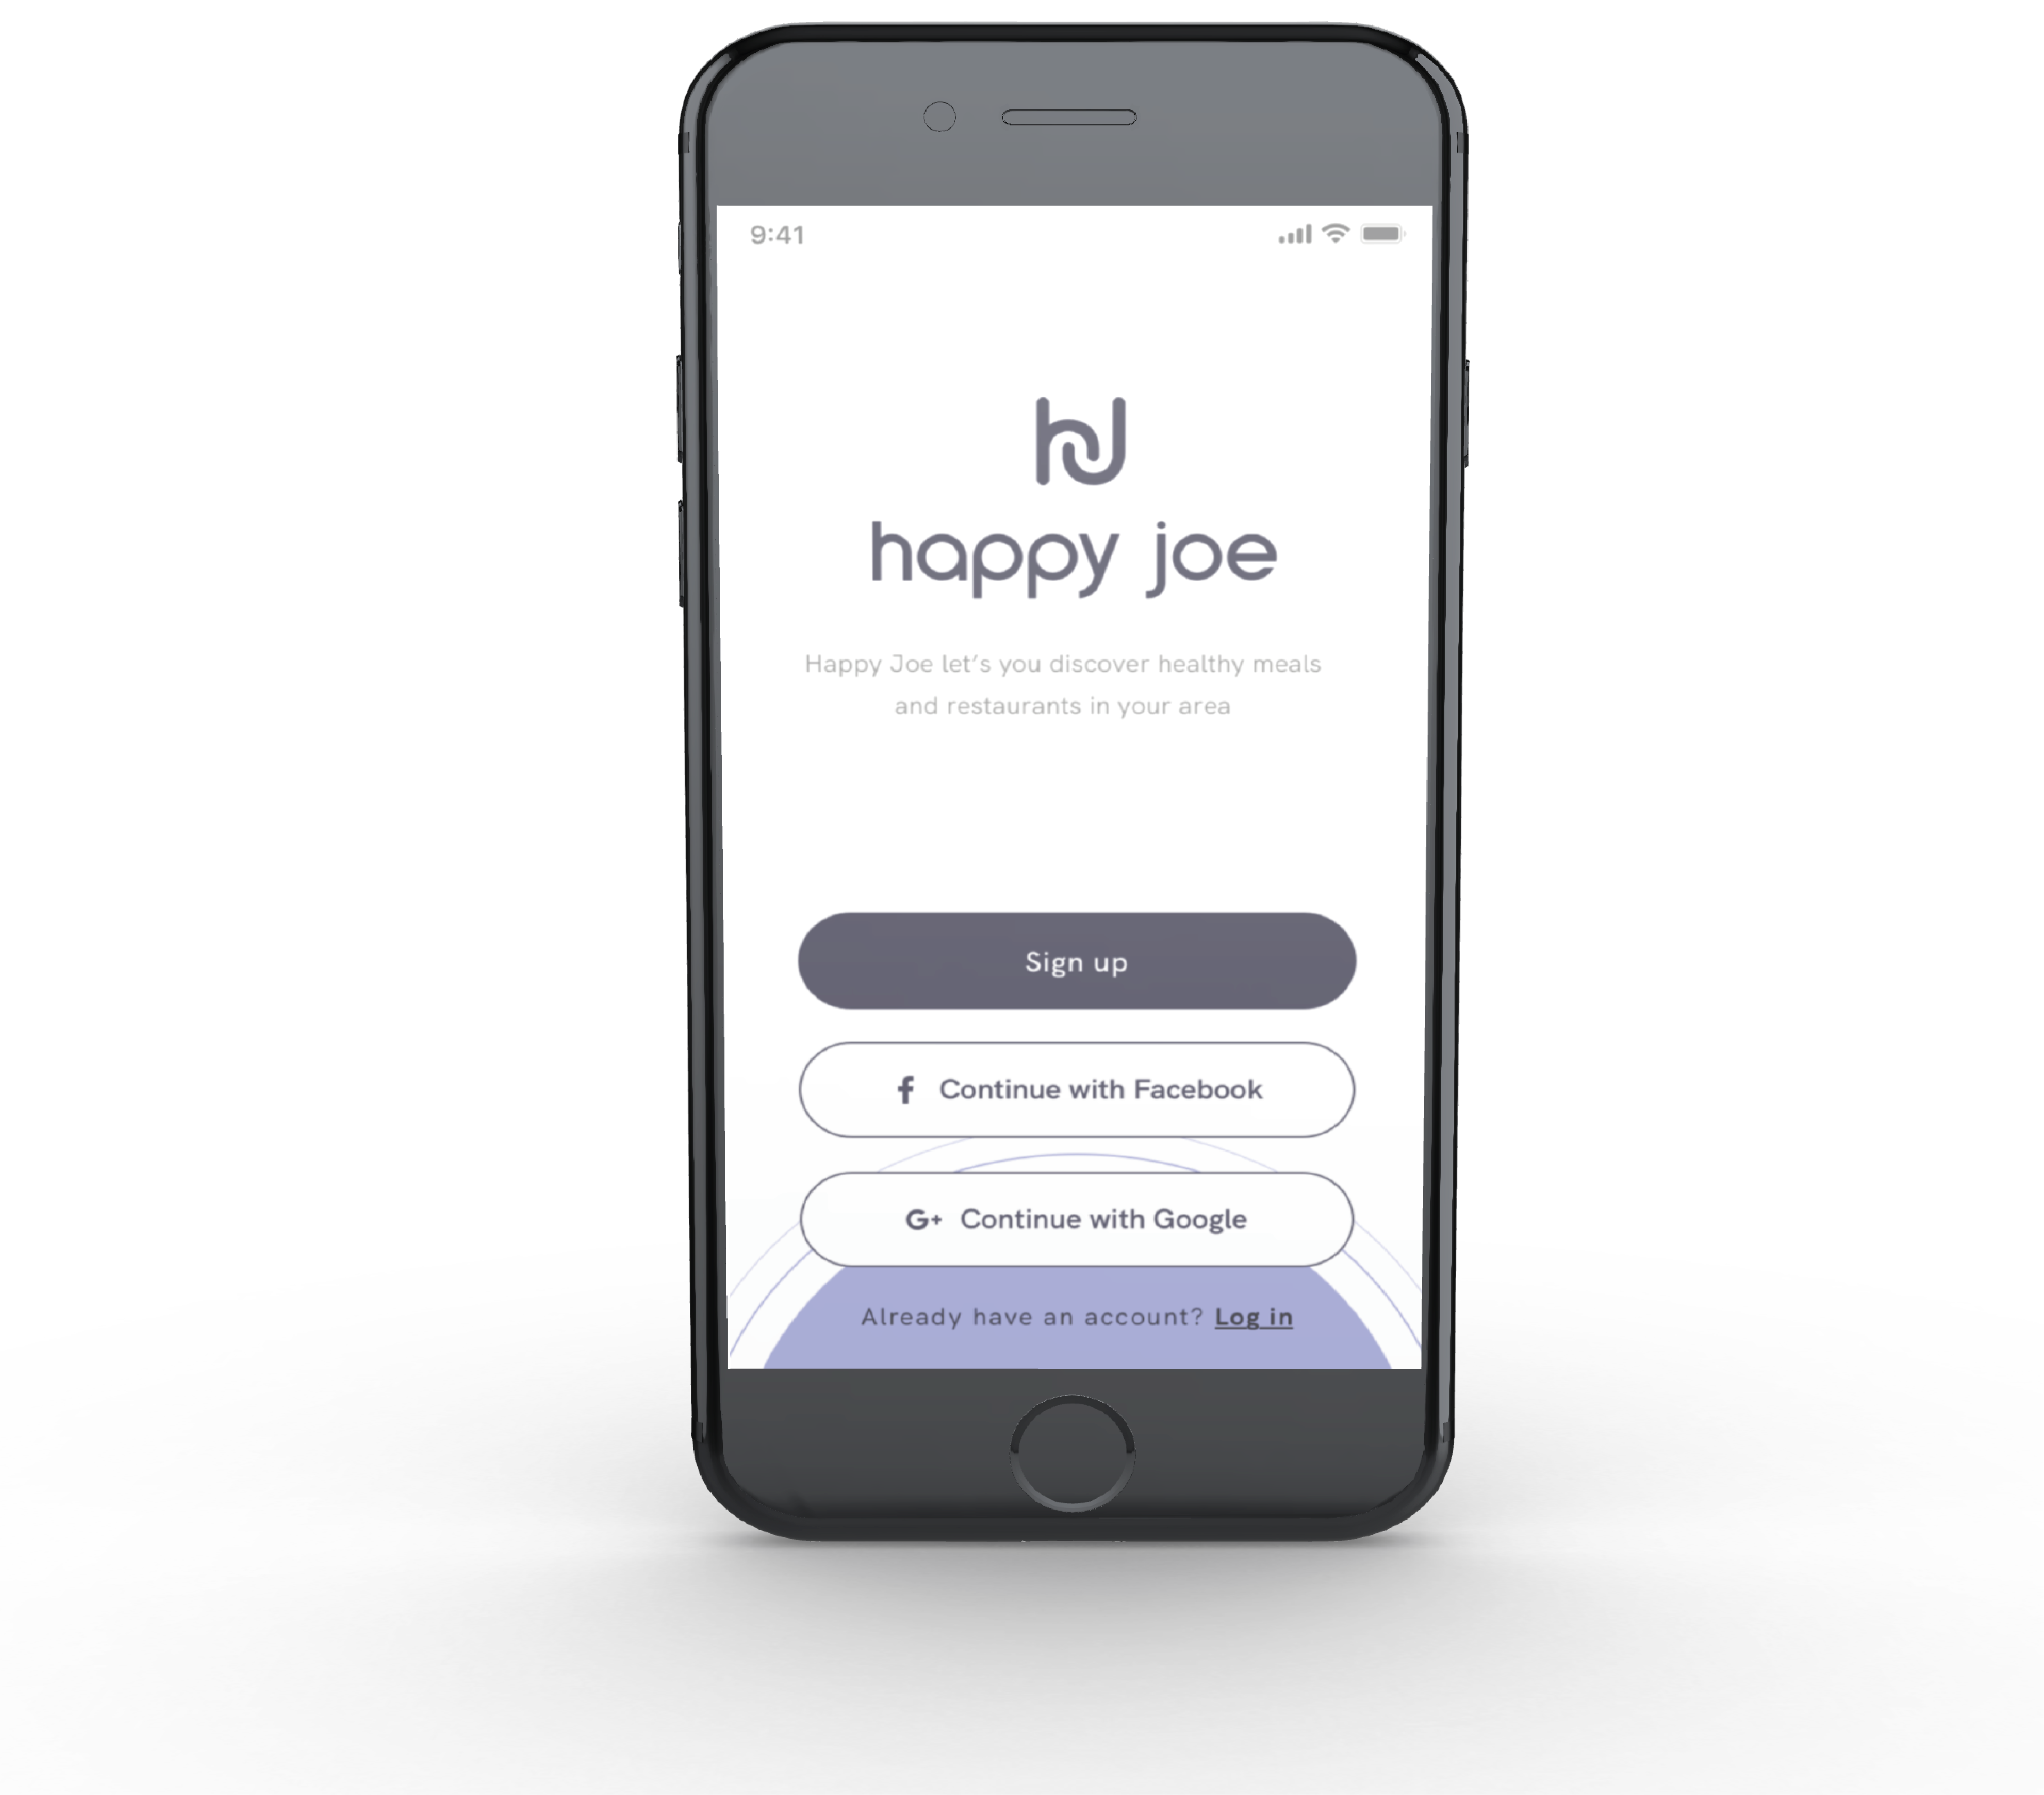 Download <b>happy joe</b>